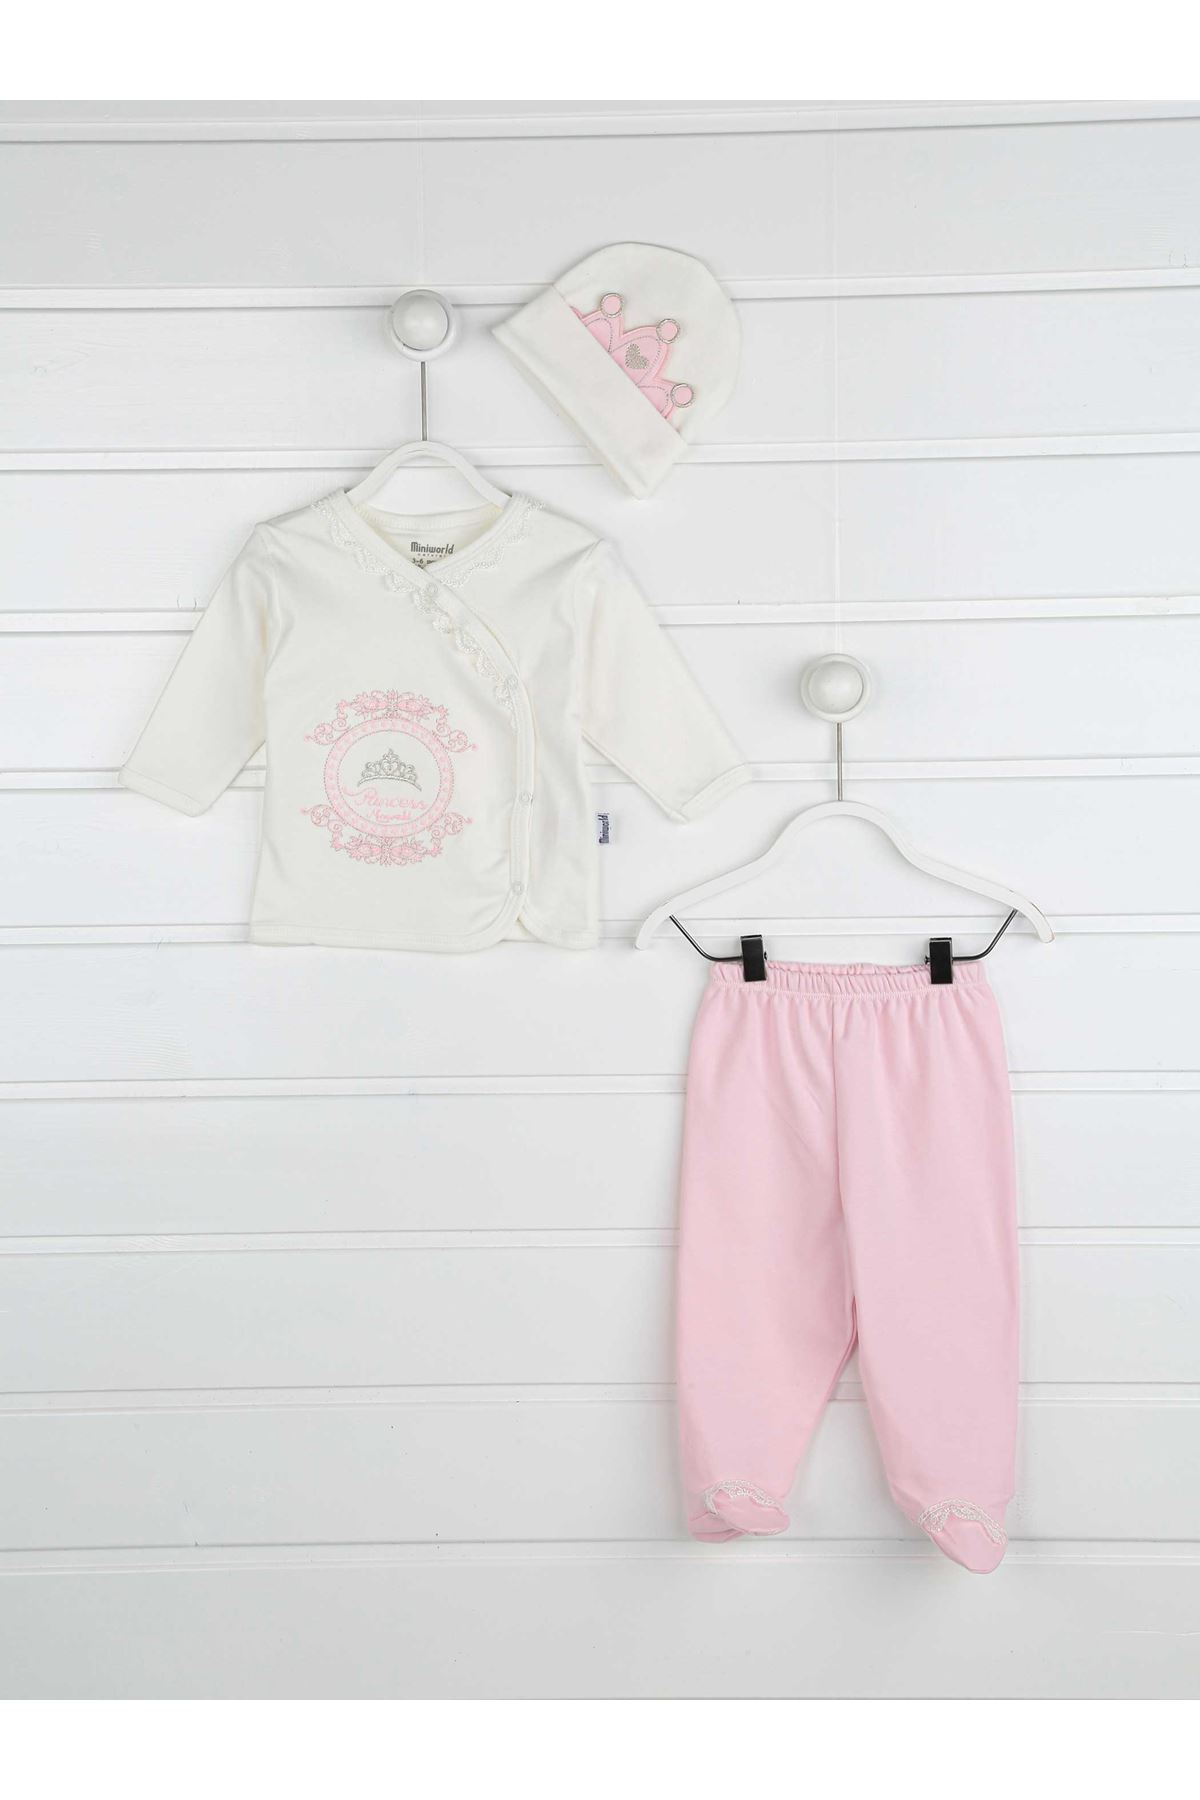 Pink princess baby girl 3-piece suit bottom clothing top hat cotton babies sets model